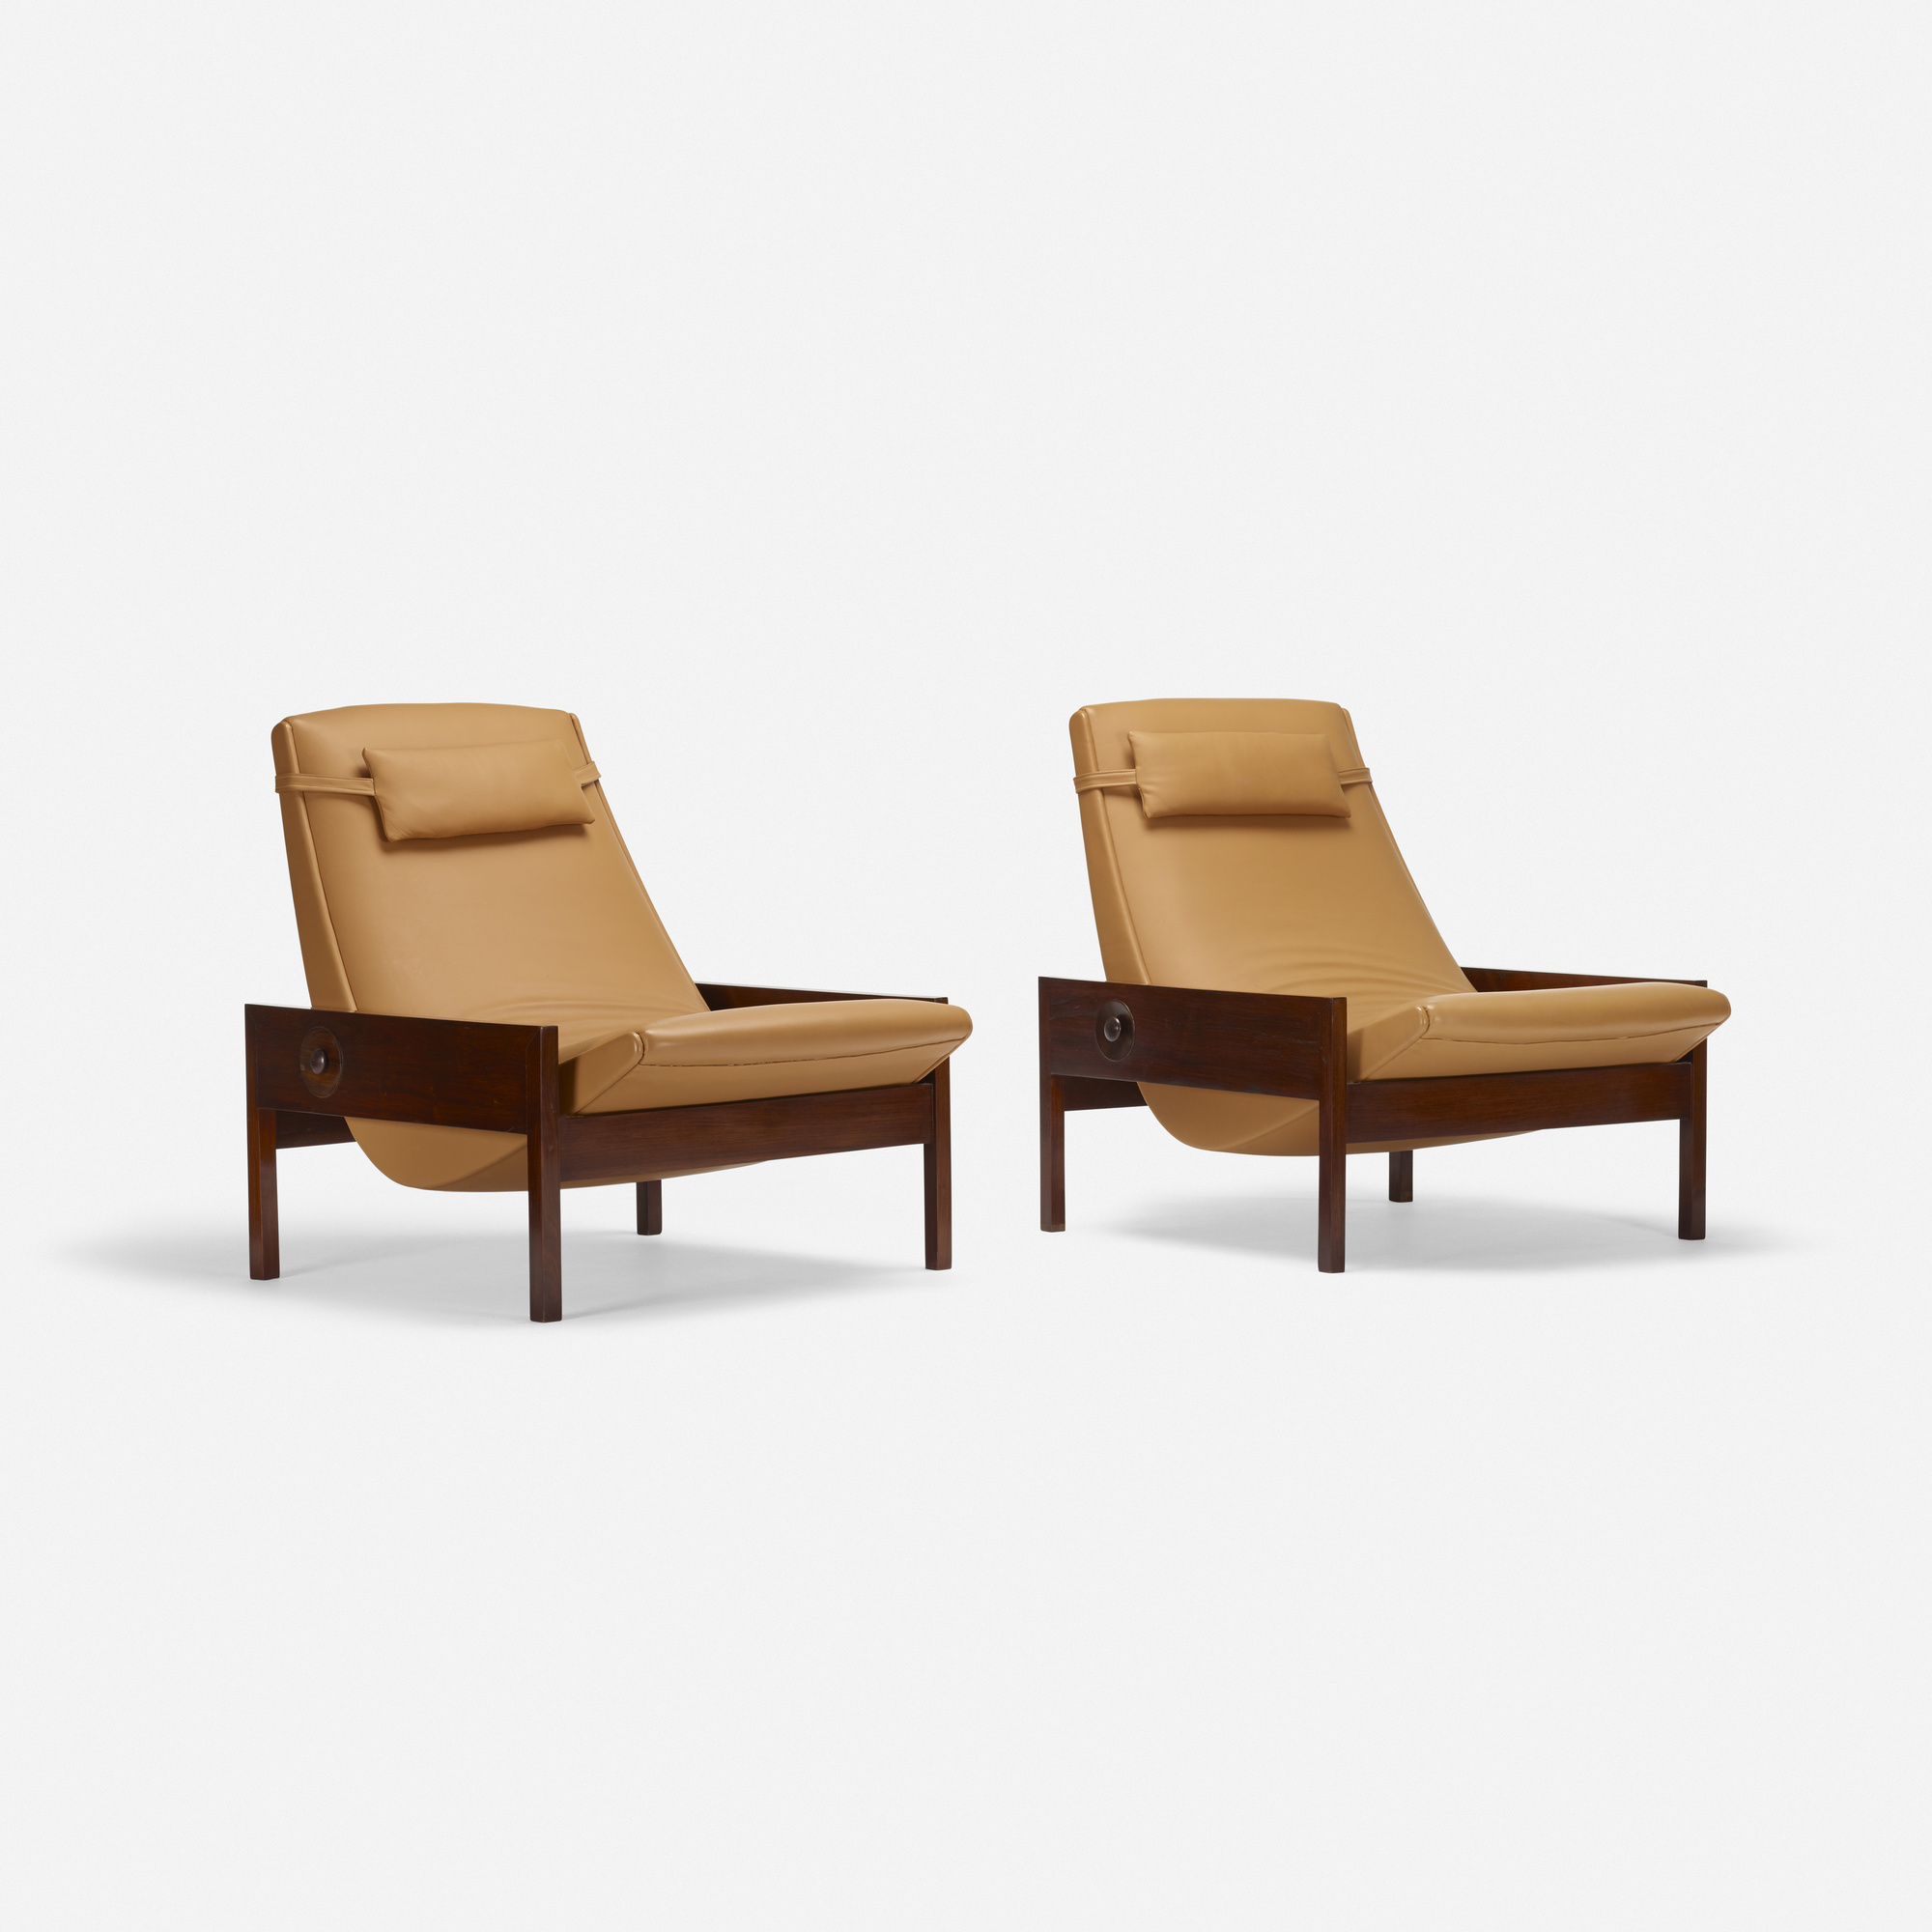 215: Brazilian / lounge chairs, pair (1 of 3)